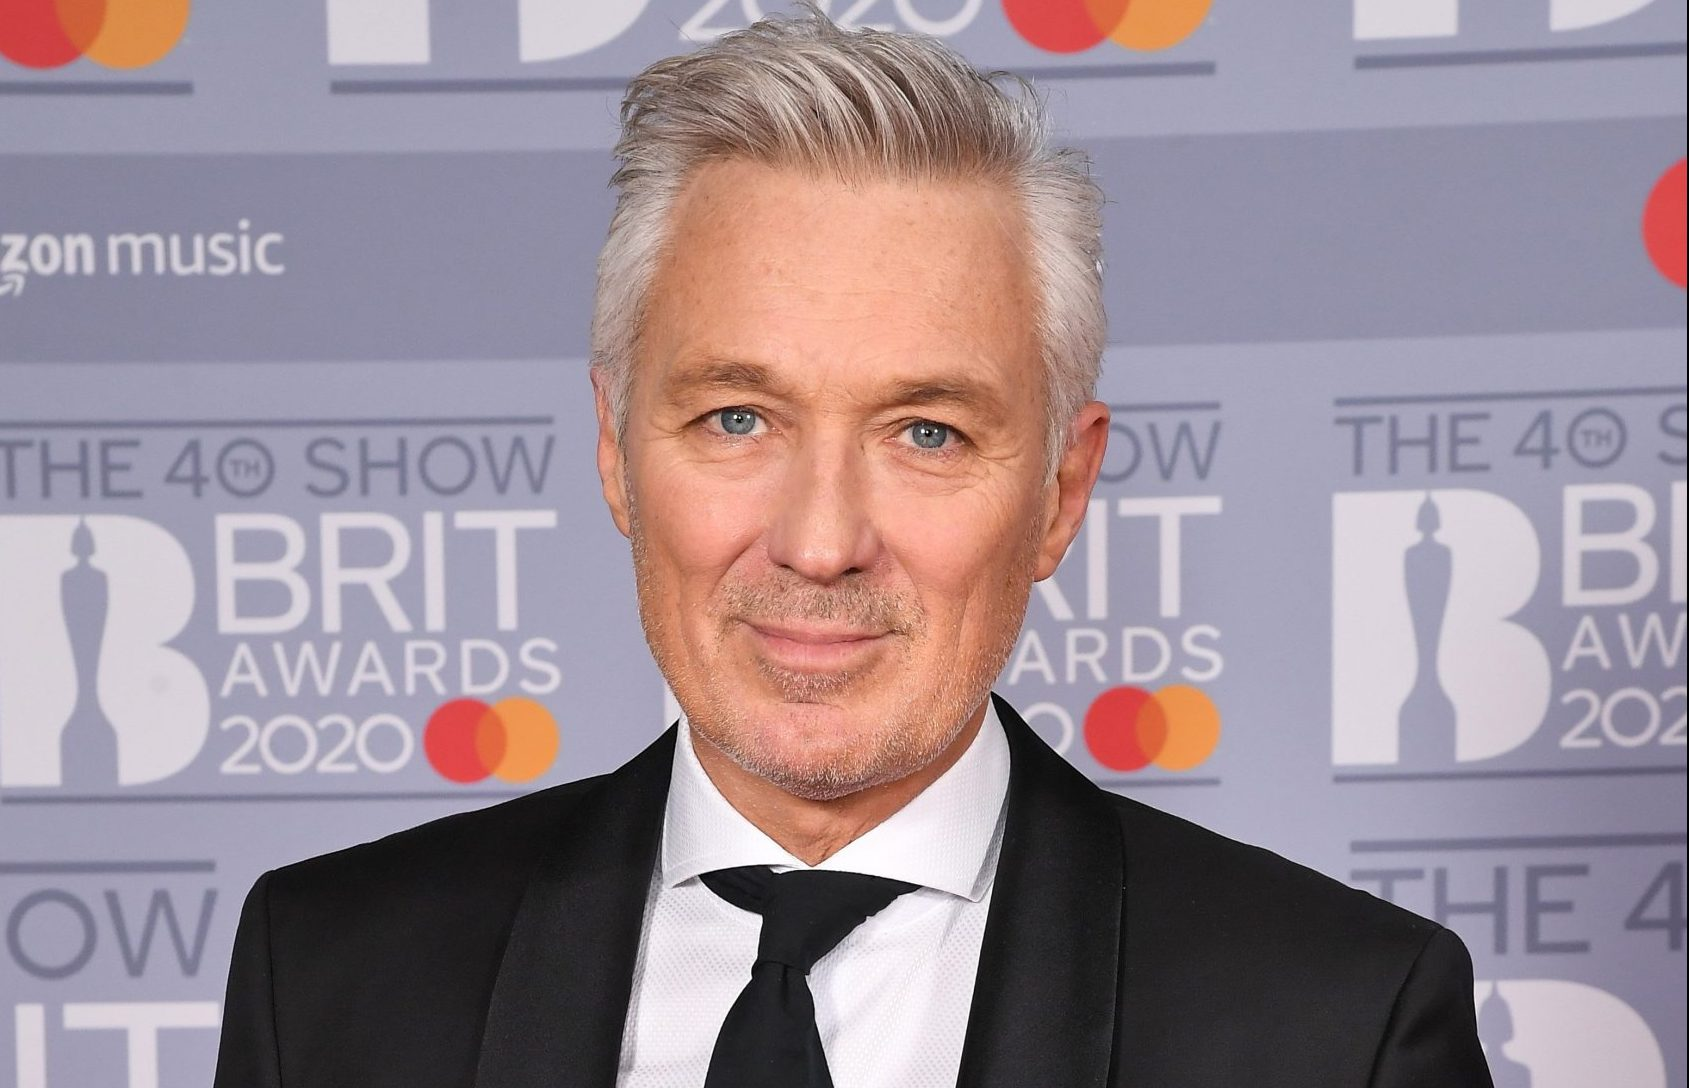 Martin Kemp confused about why EastEnders' Mick Carter didn't save Linda Carter